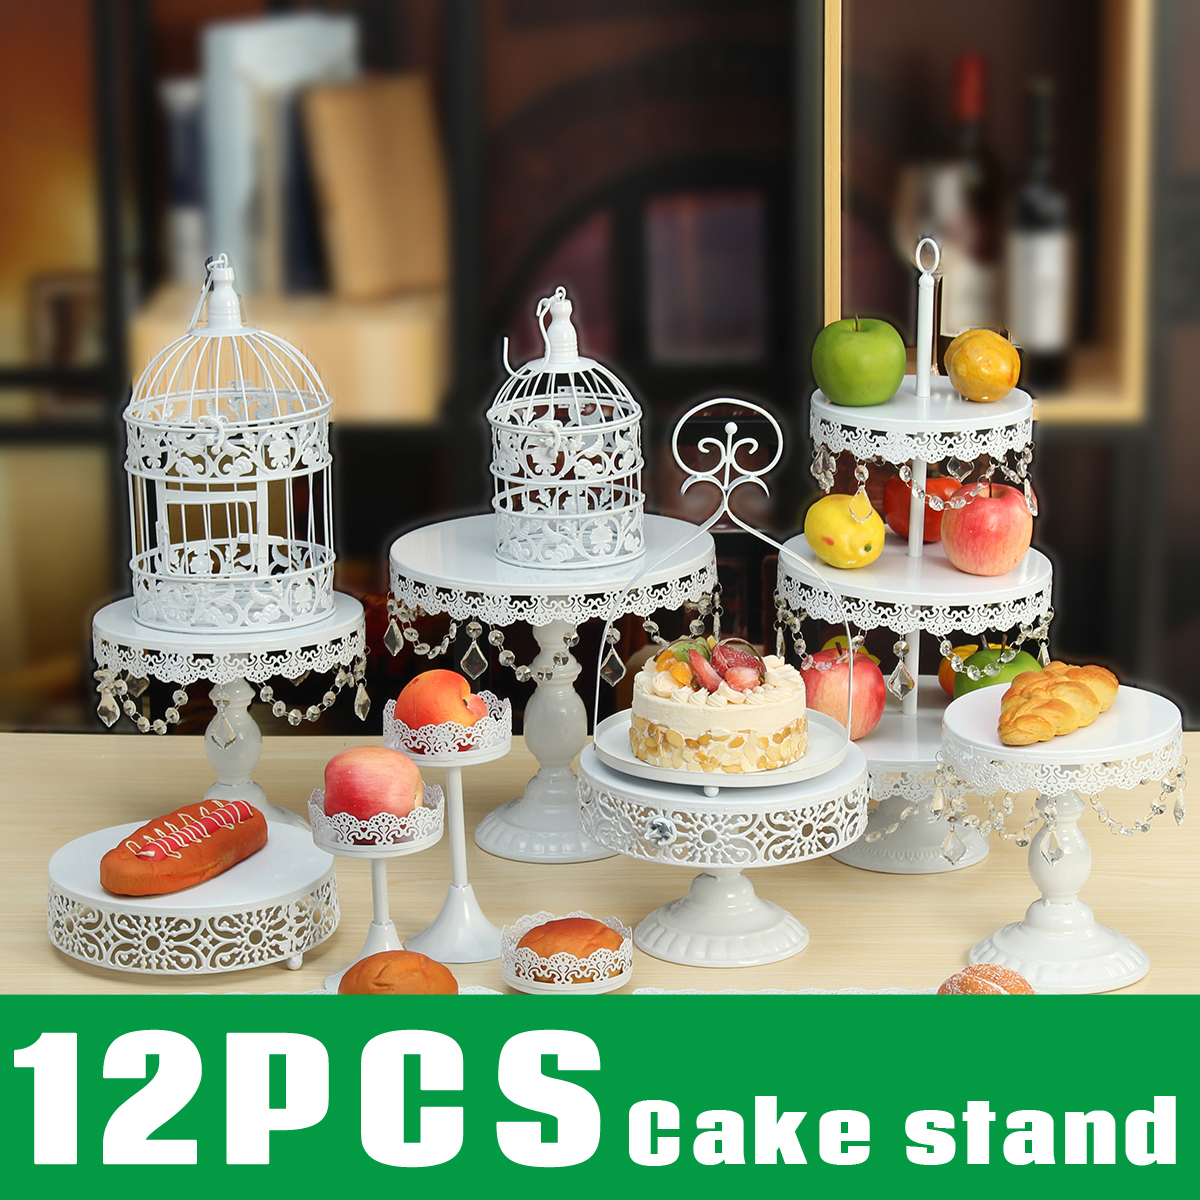 12Pcs/Set Crystal Cake Holder Cupcake Stand Birthday Party Wedding Display Decorations